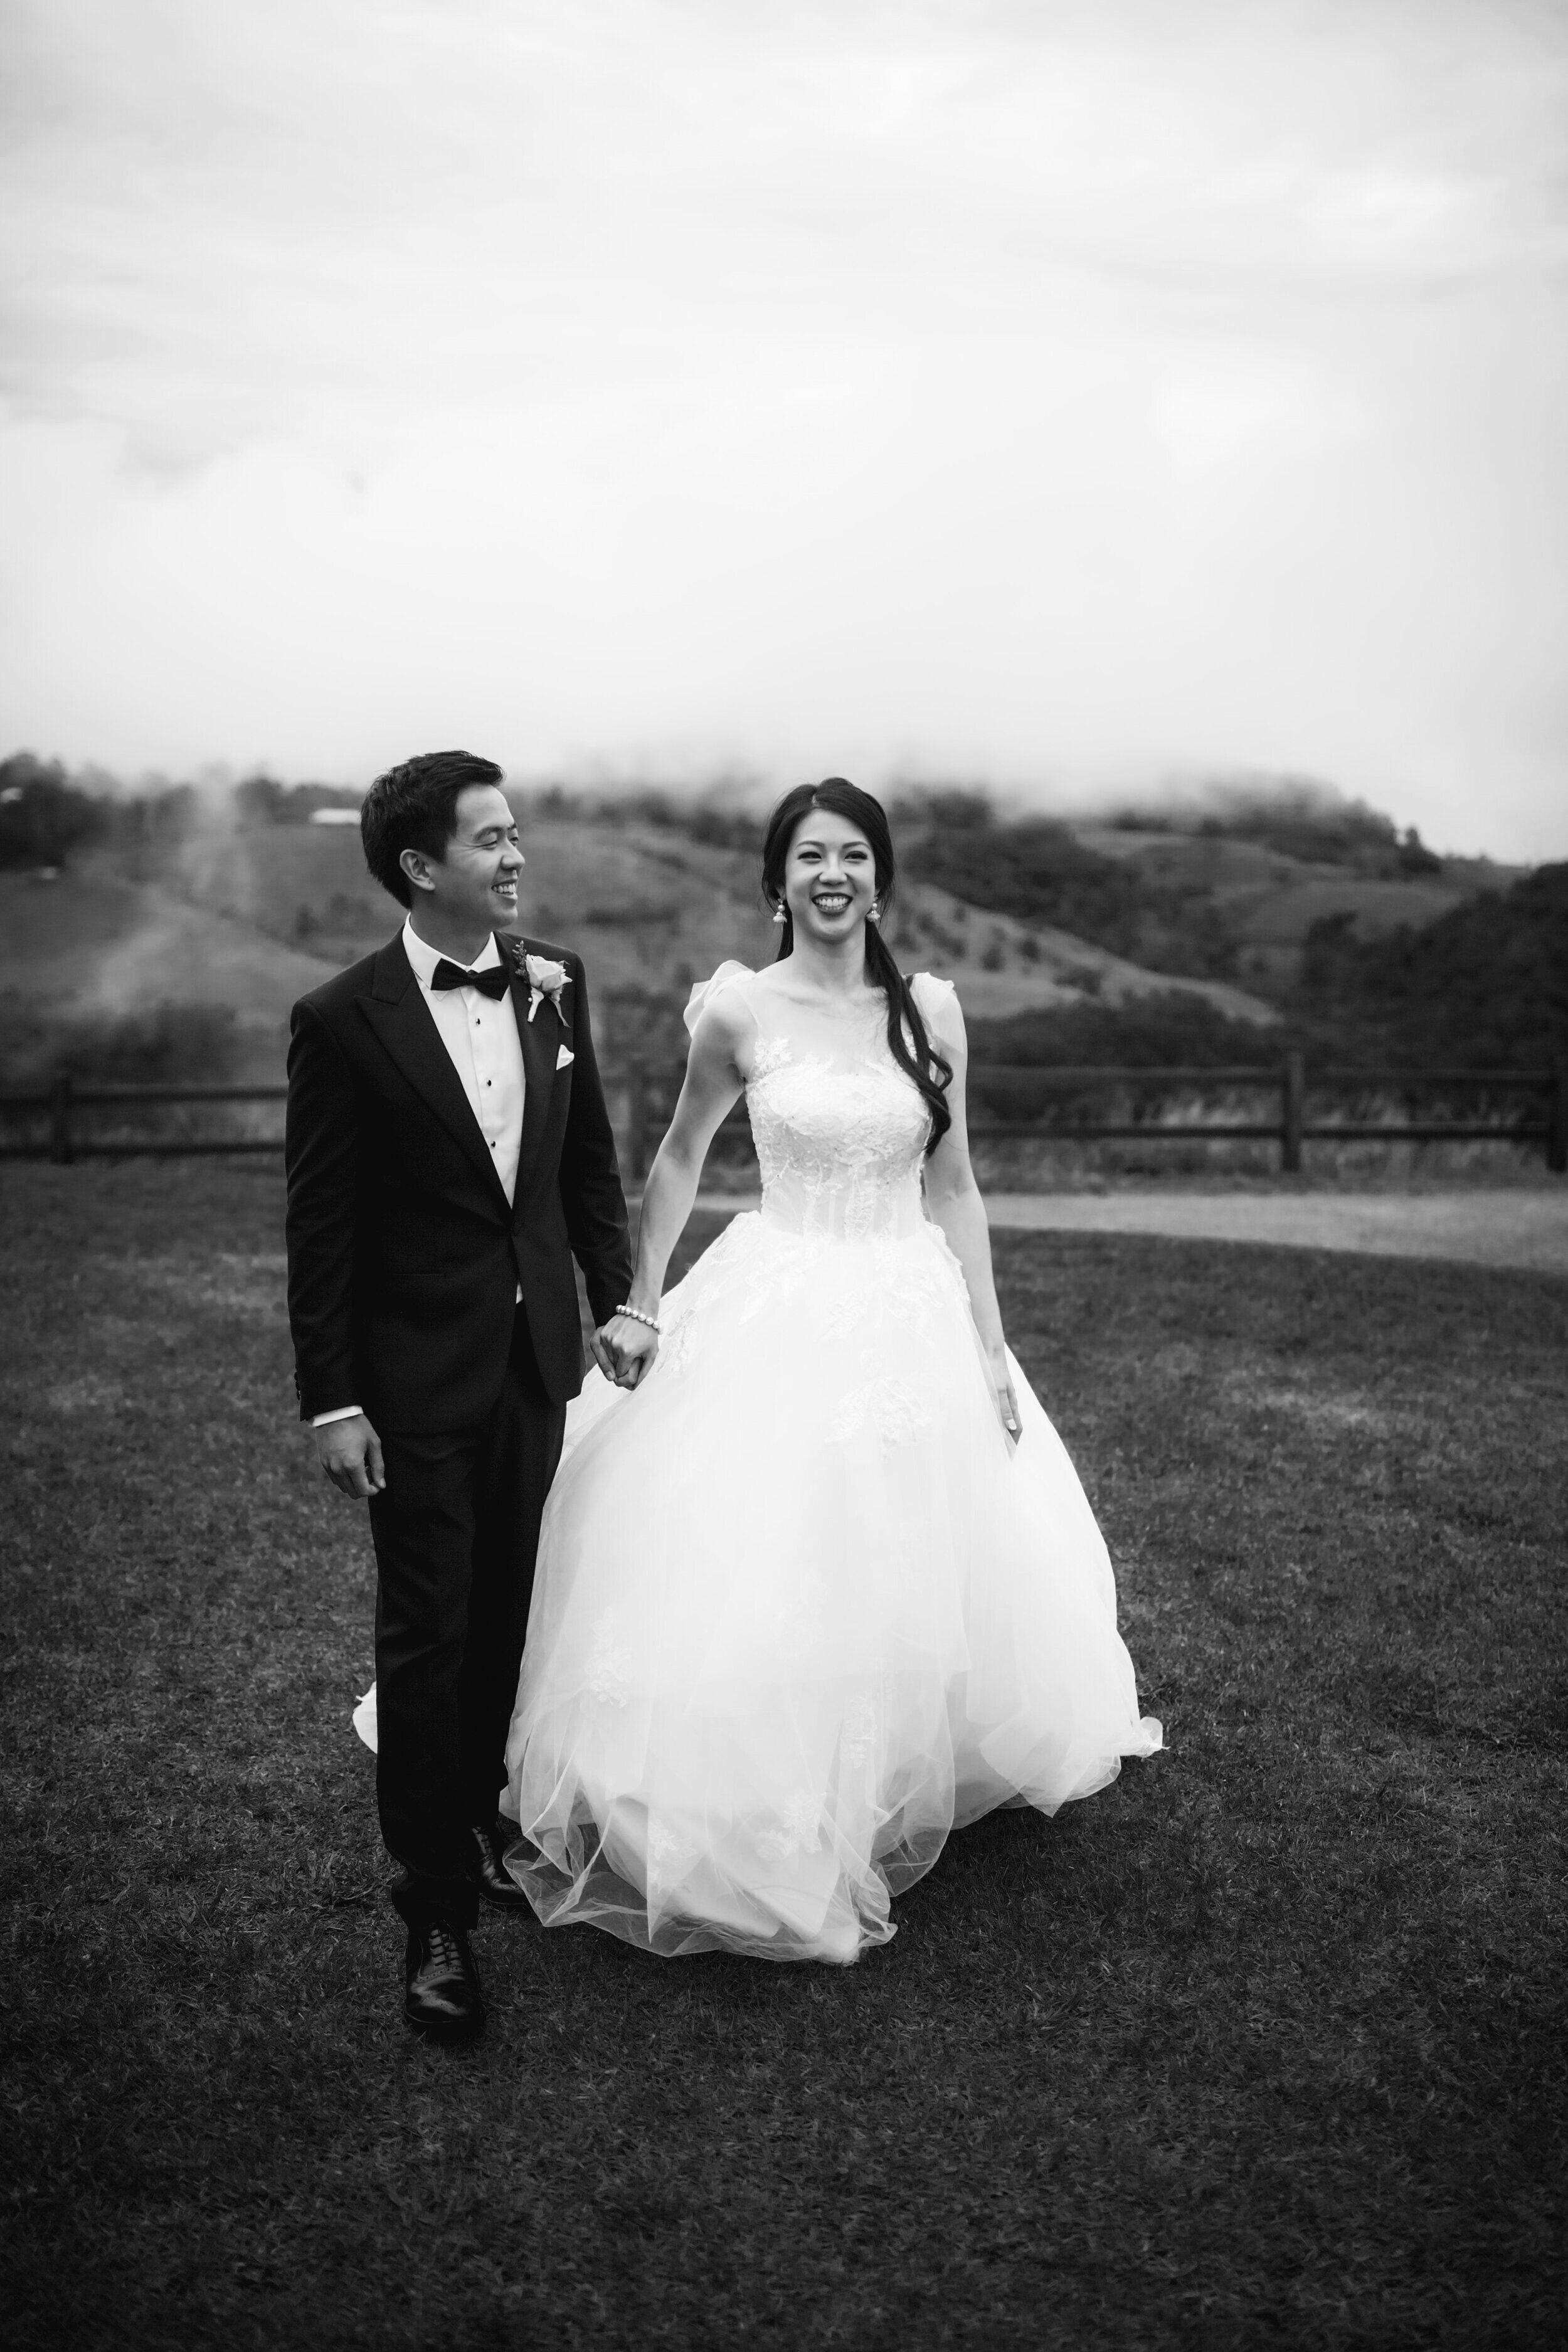 Grace & Edison - Excellent service and our wedding photos turned out absolutely amazing. David is a top tier very experienced photographer who guided us on our special day into taking some amazing memorable photos. Would definitely recommend.